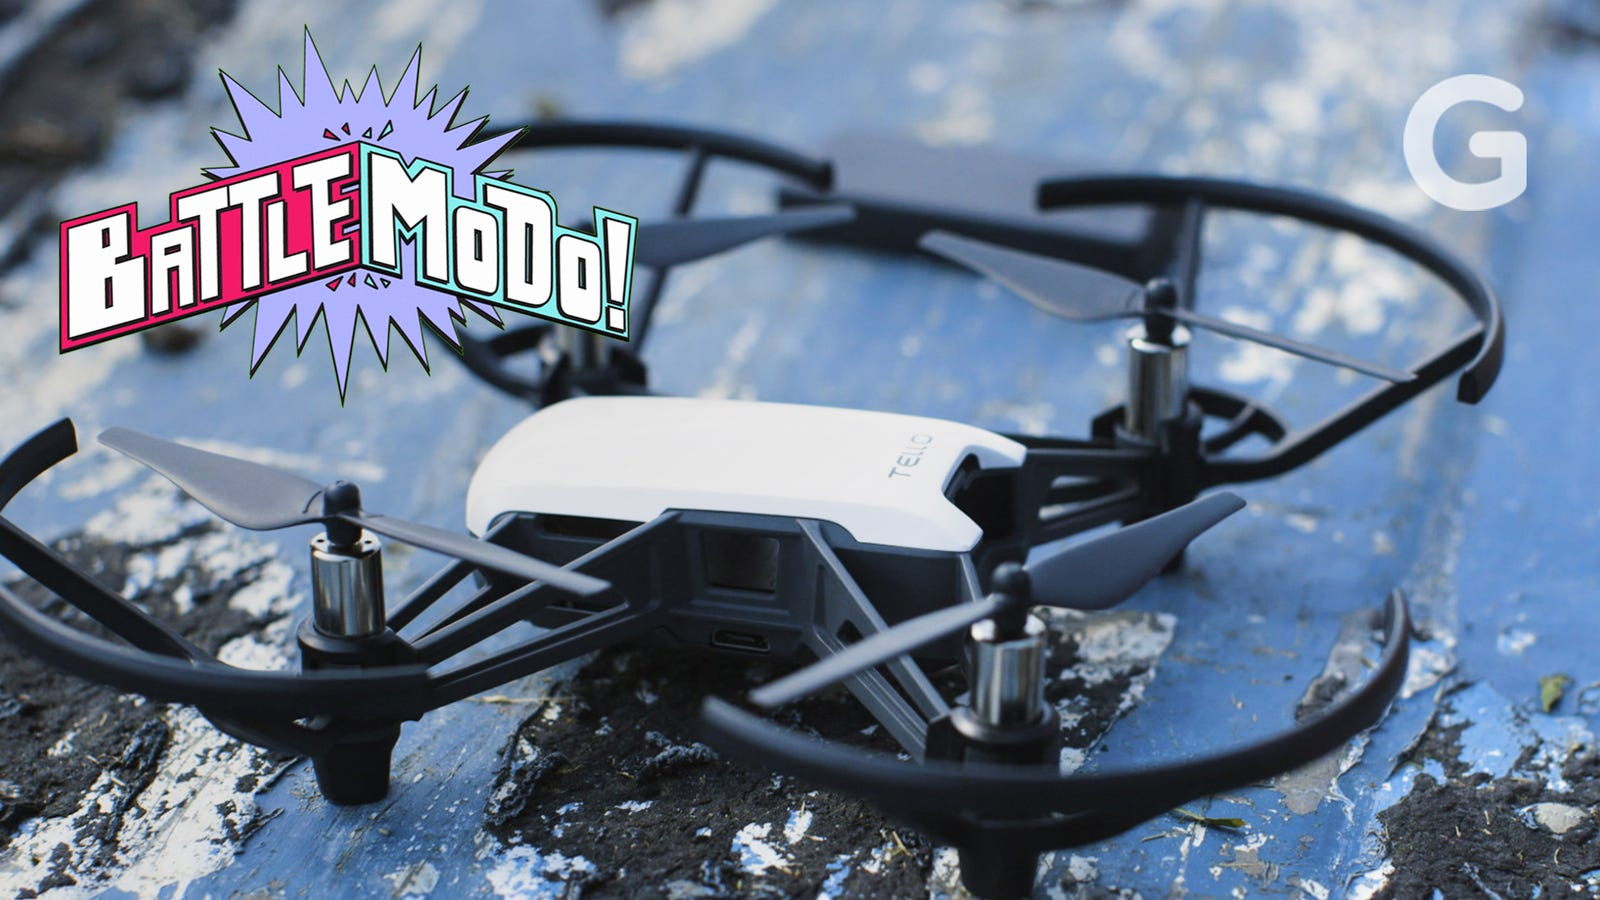 The Best Cheap Drones for Beginners